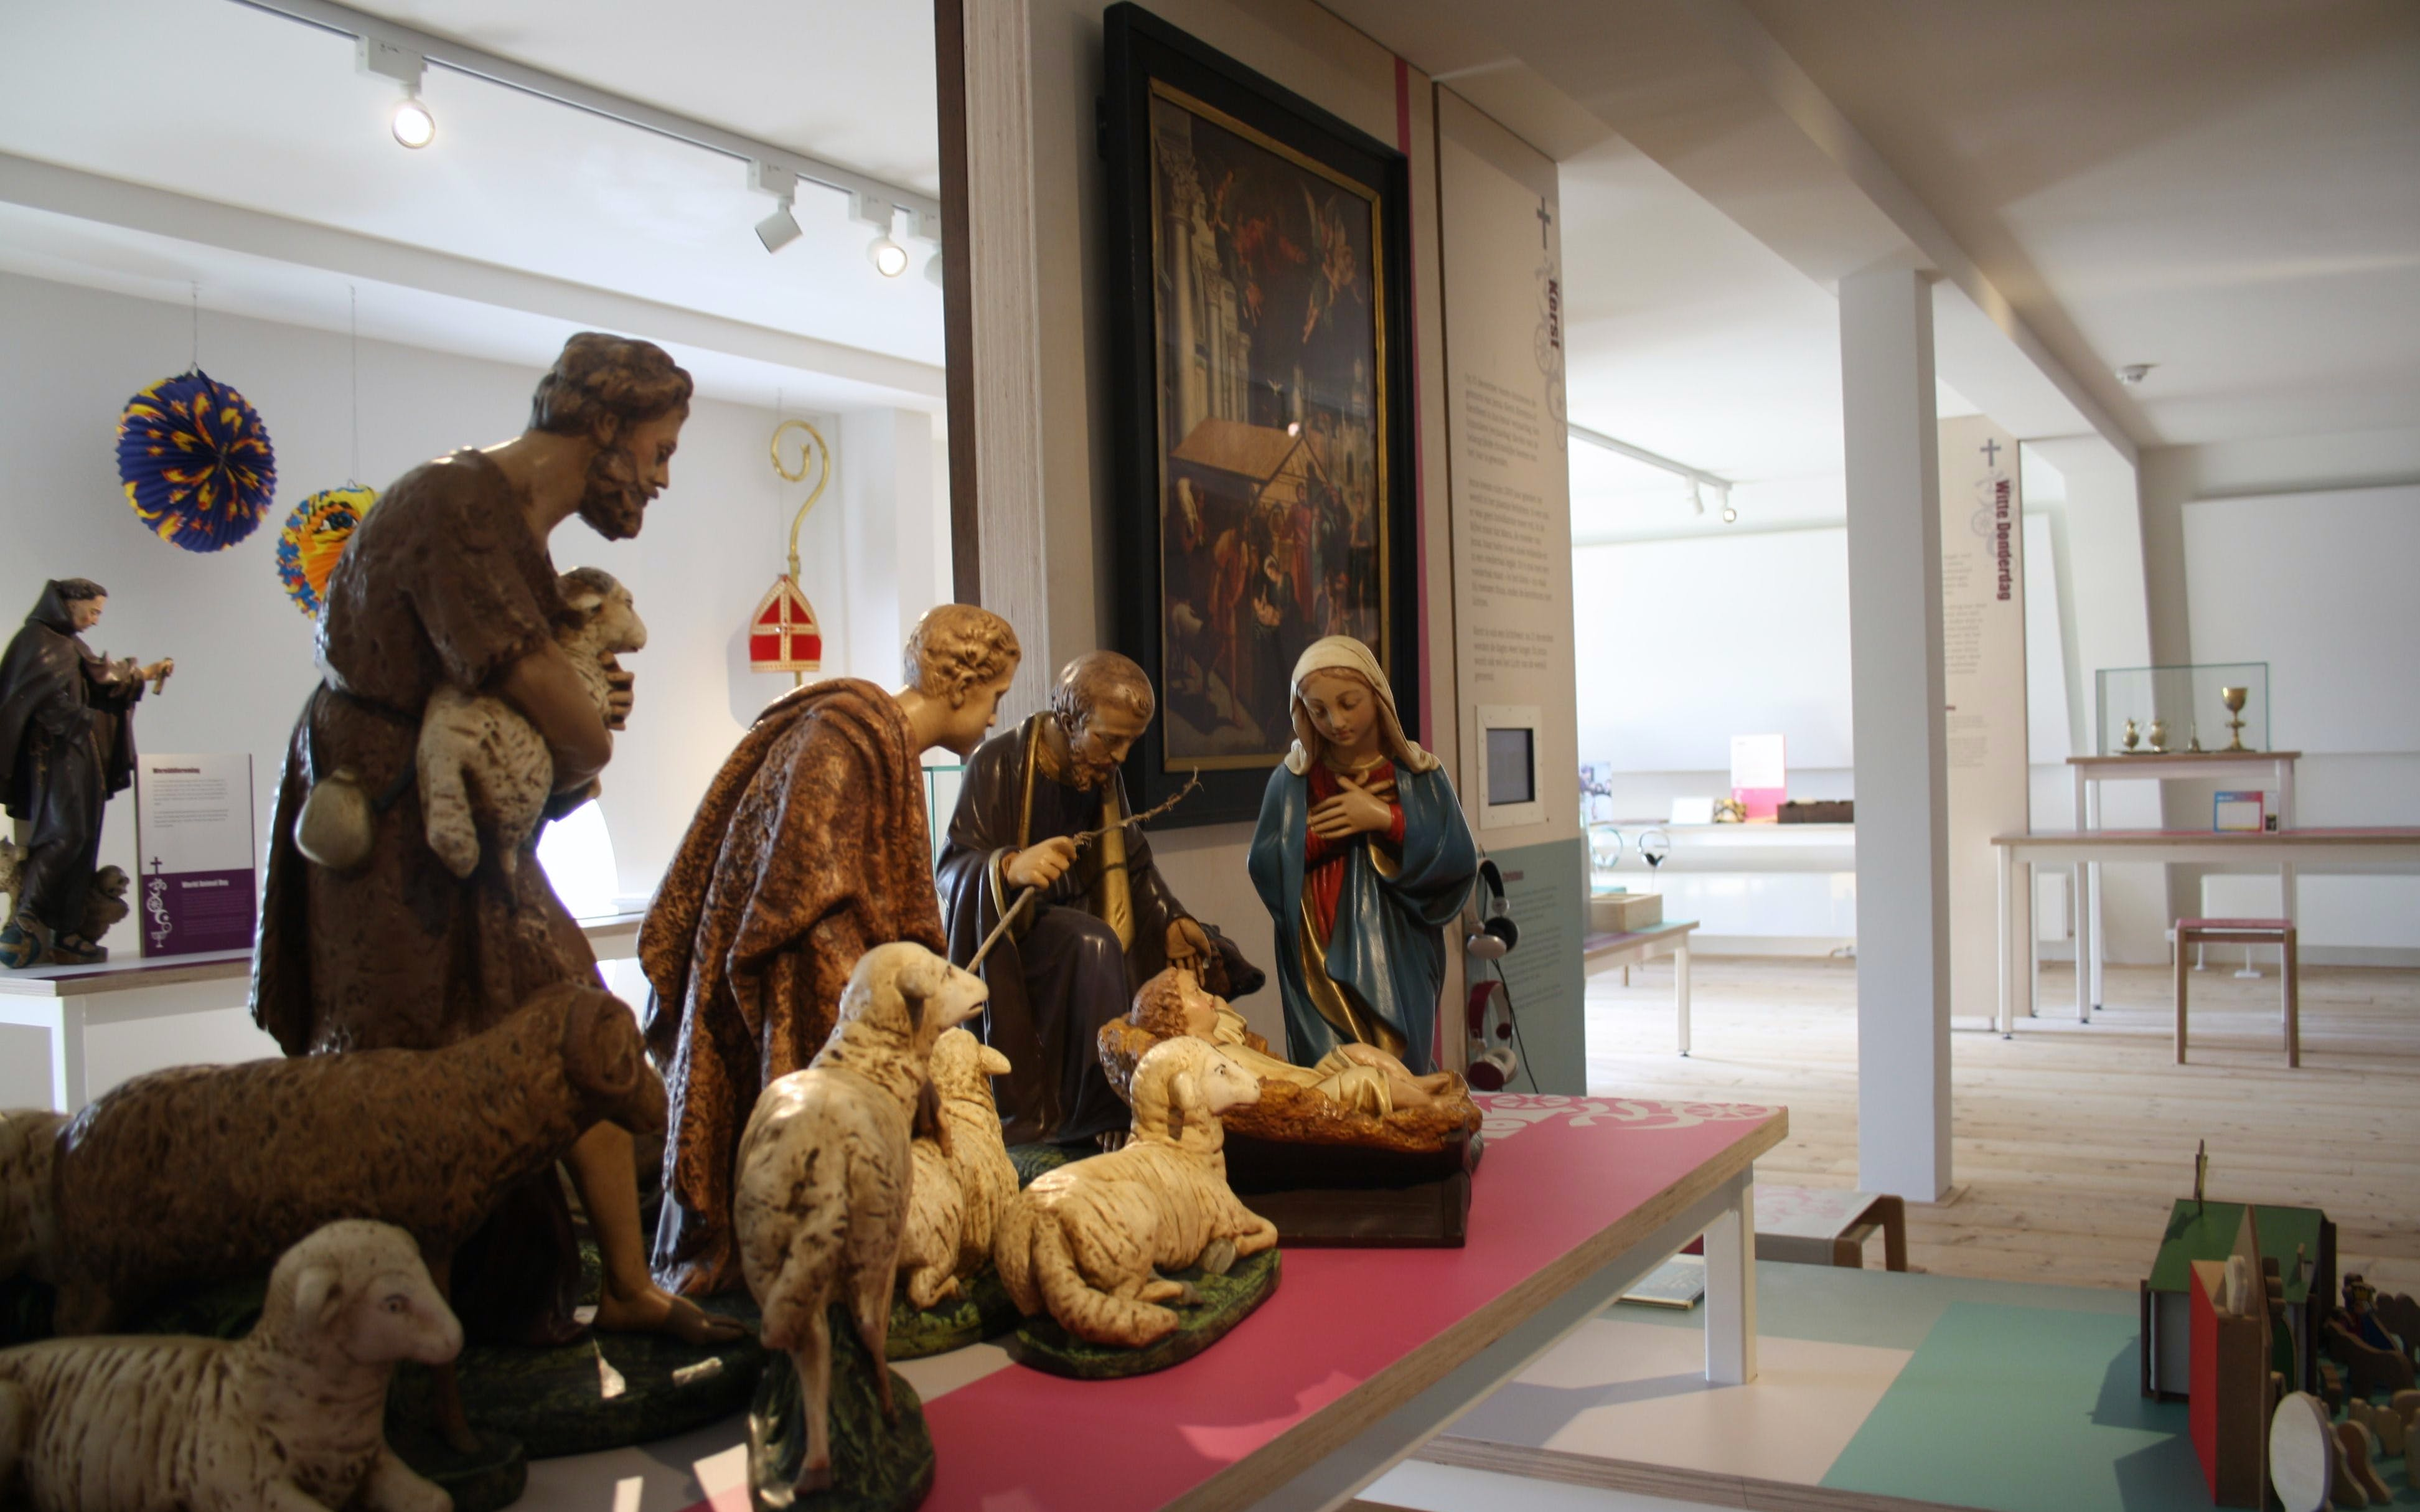 biblical museum - cromhouthuis-1